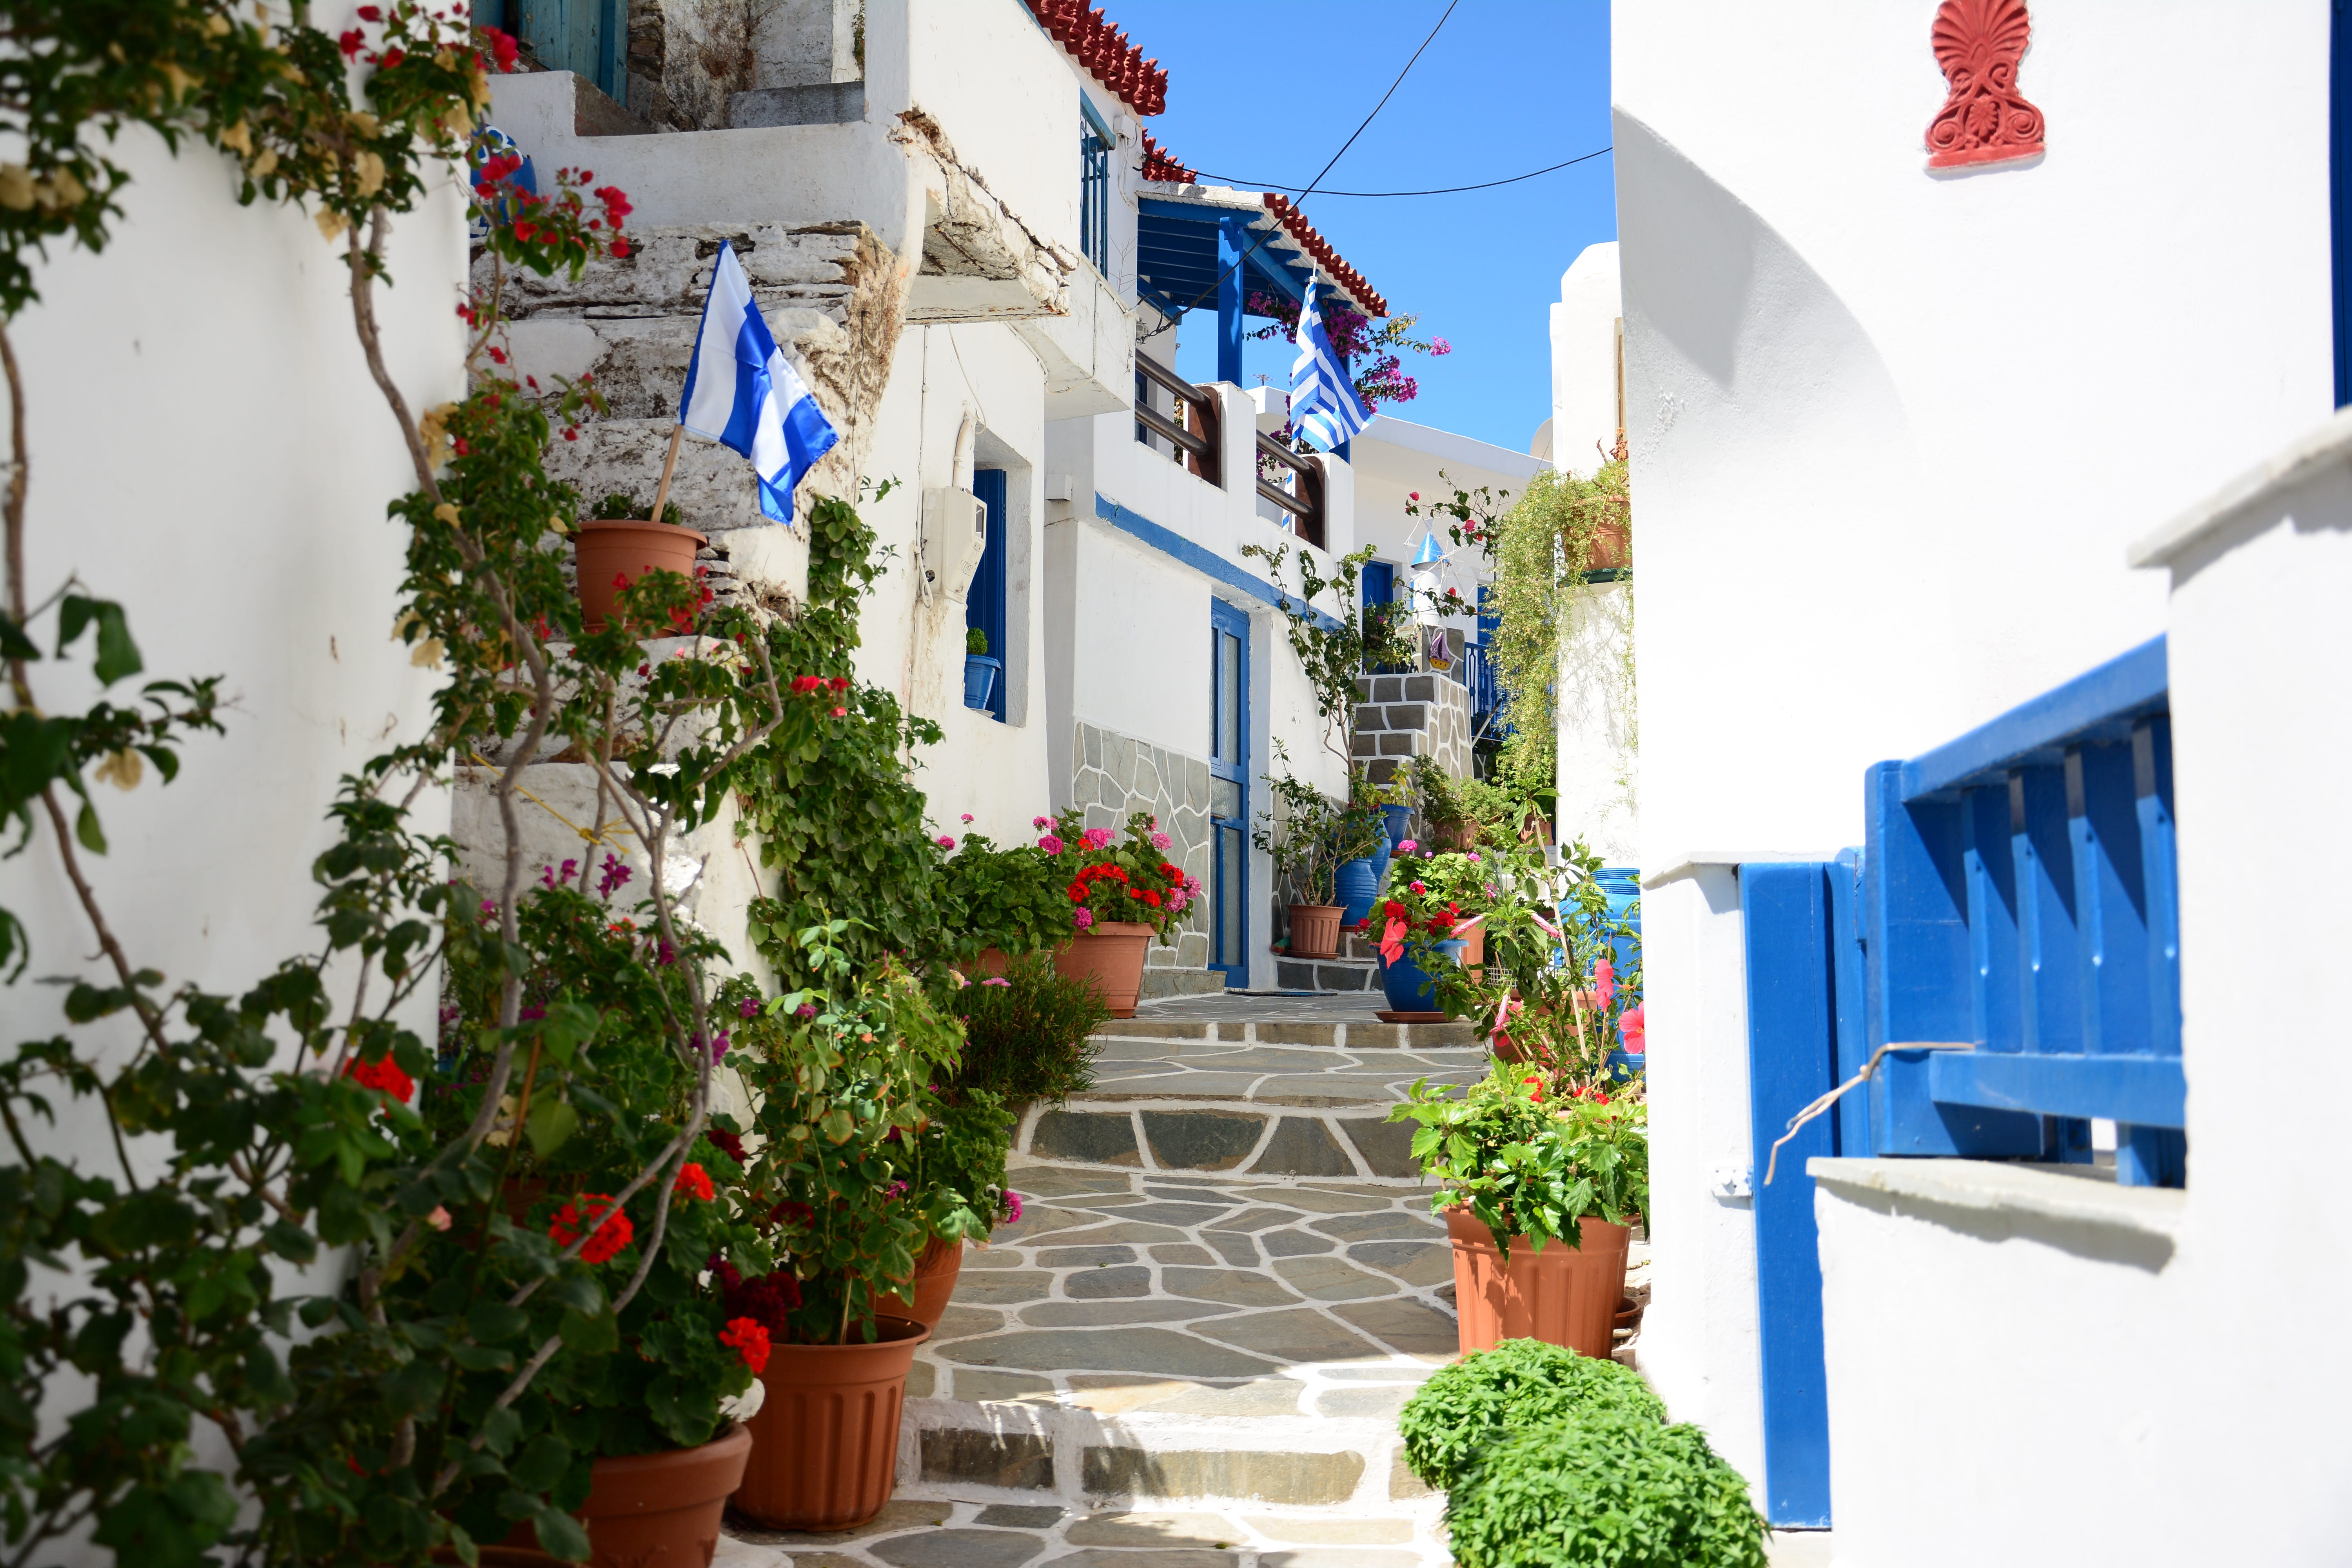 The colorful village of Driopida is the old capital of the island, filled with traditional coffeehouses and restaurants where locals congregate.